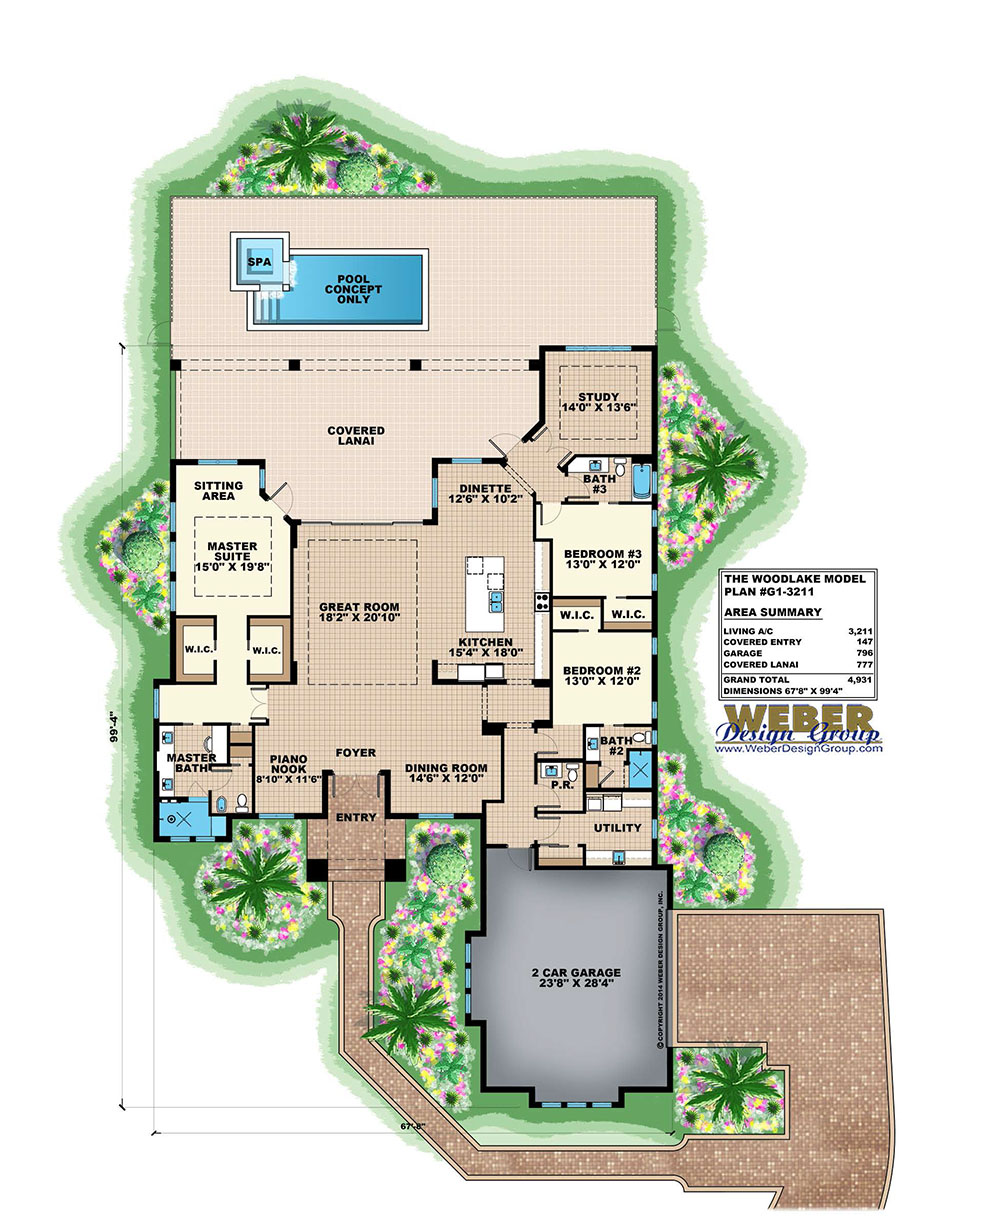 Villa veletta house plan weber design group for Weber house plans